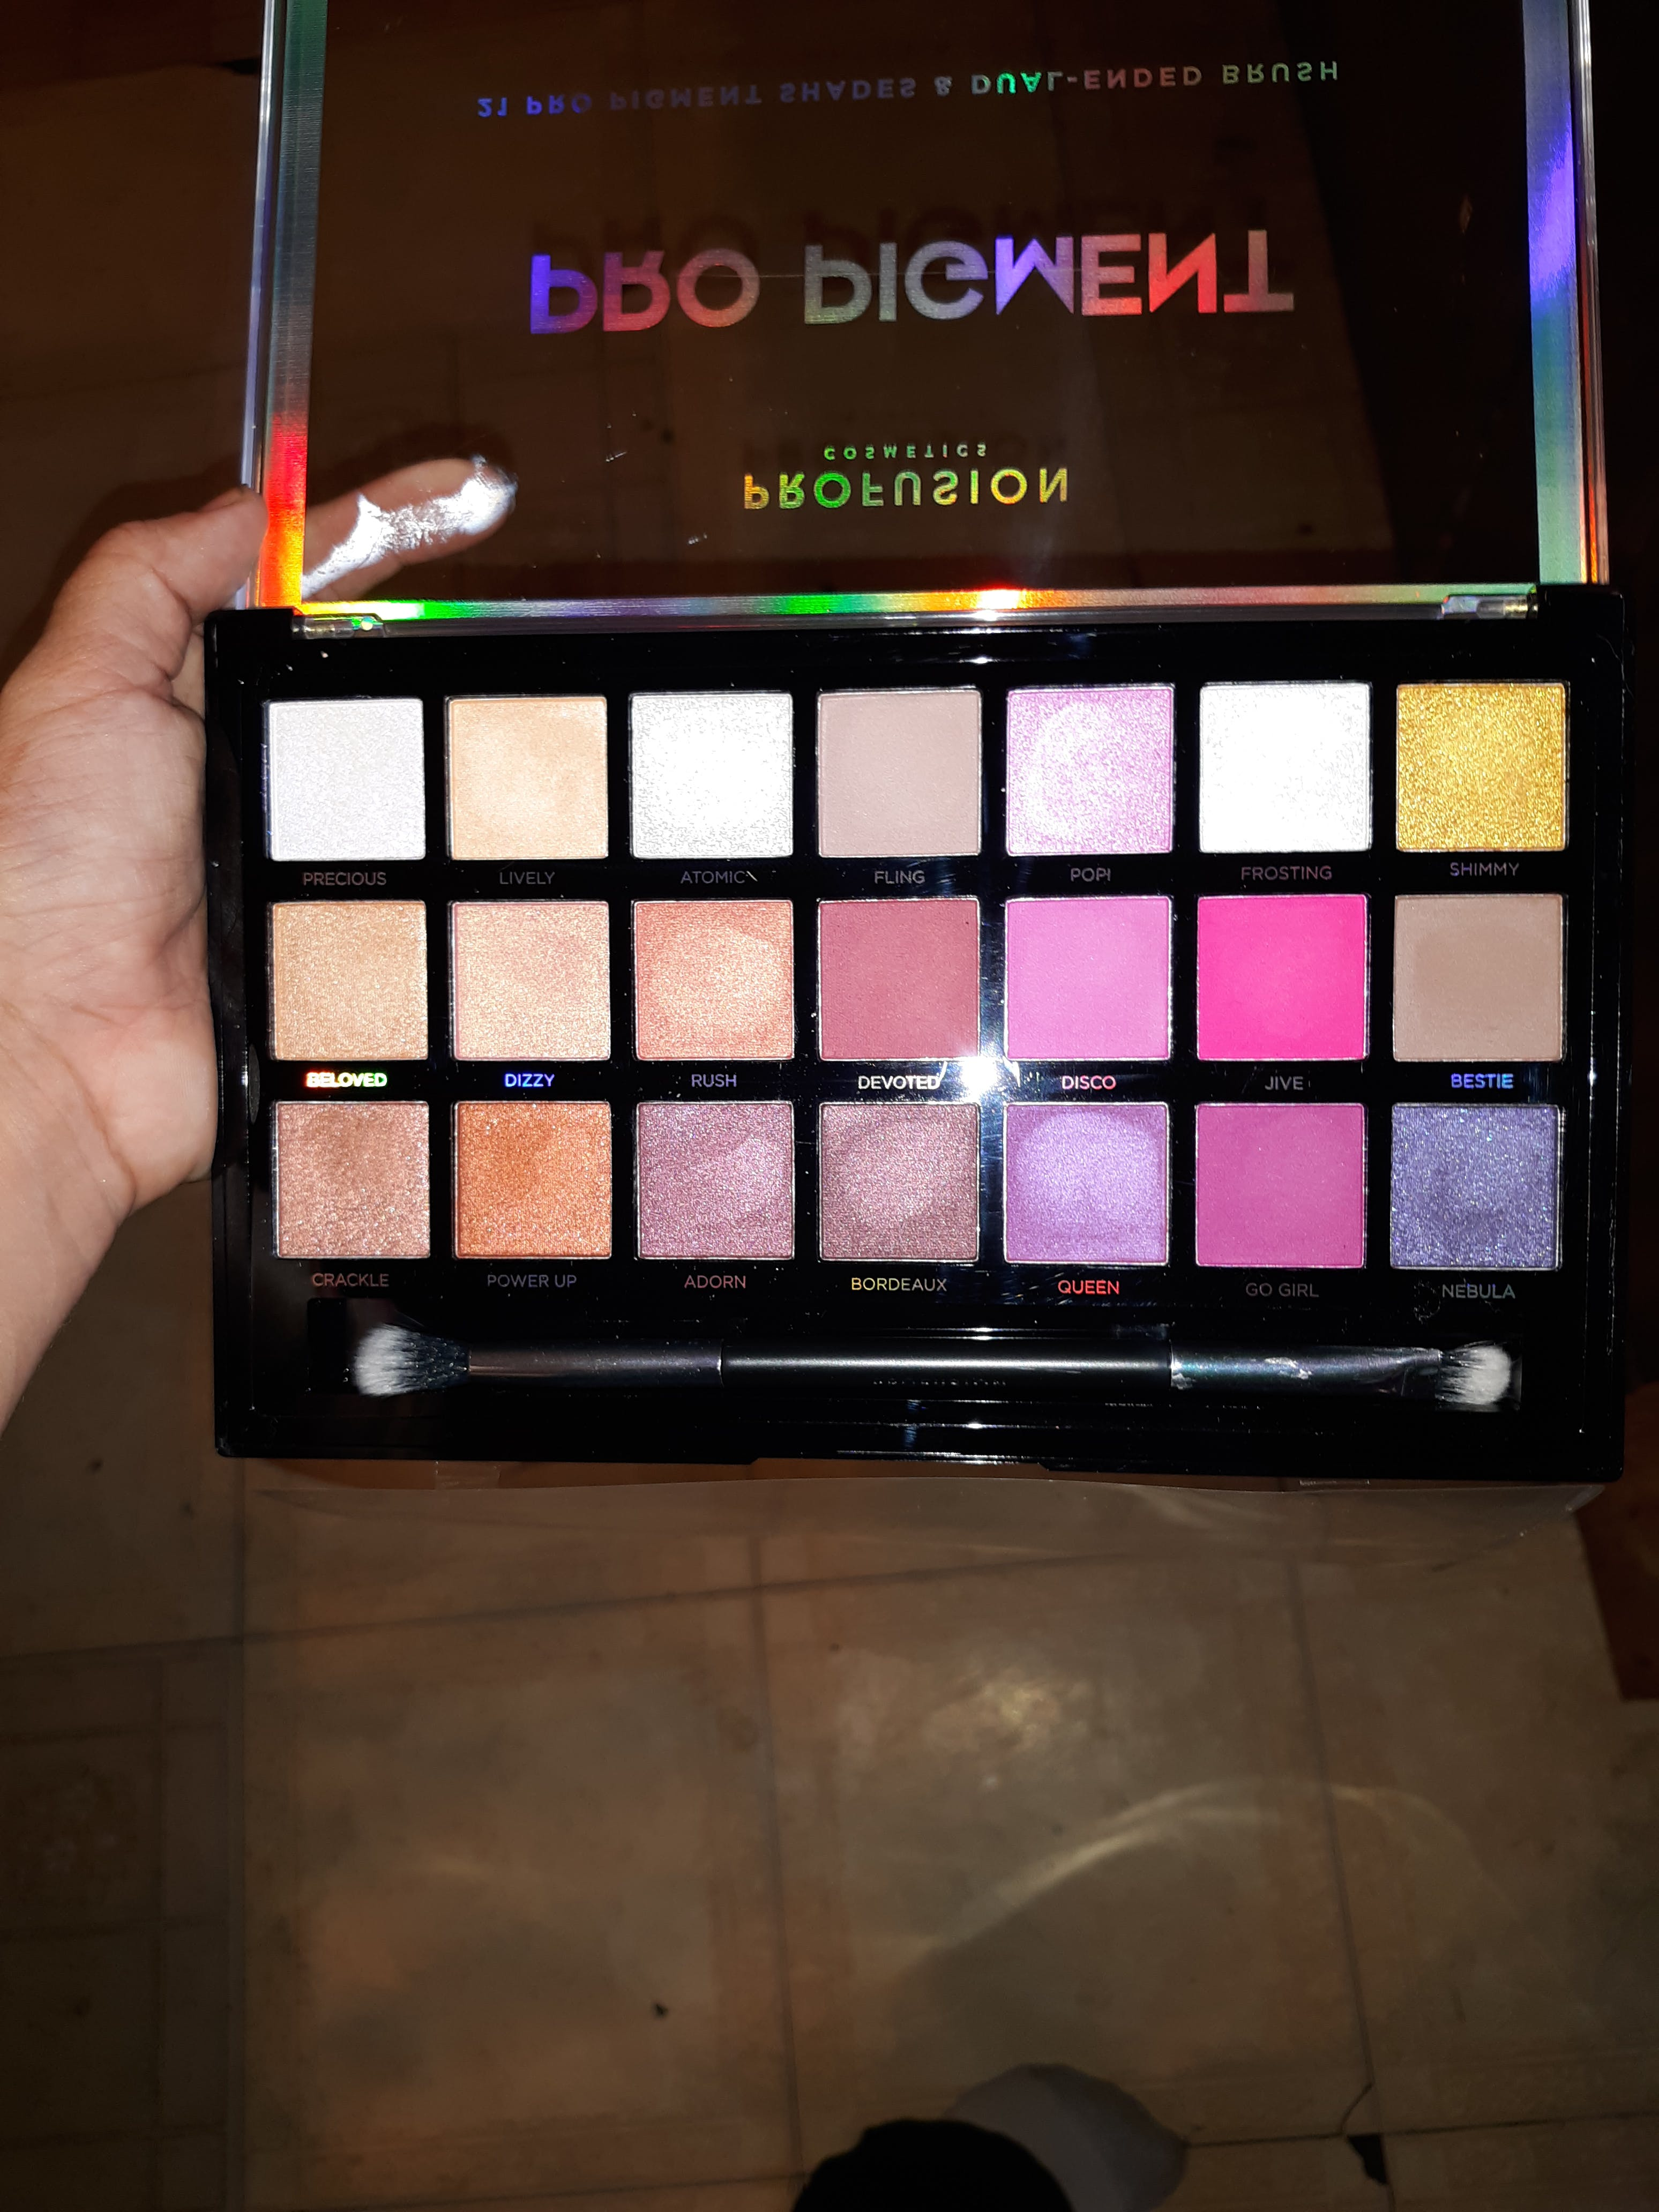 b8da42663b I highly recommend buying this palette it blends out so easy and they are  so pigmented you really need to go in with a light hand with the pinks an  Purples ...